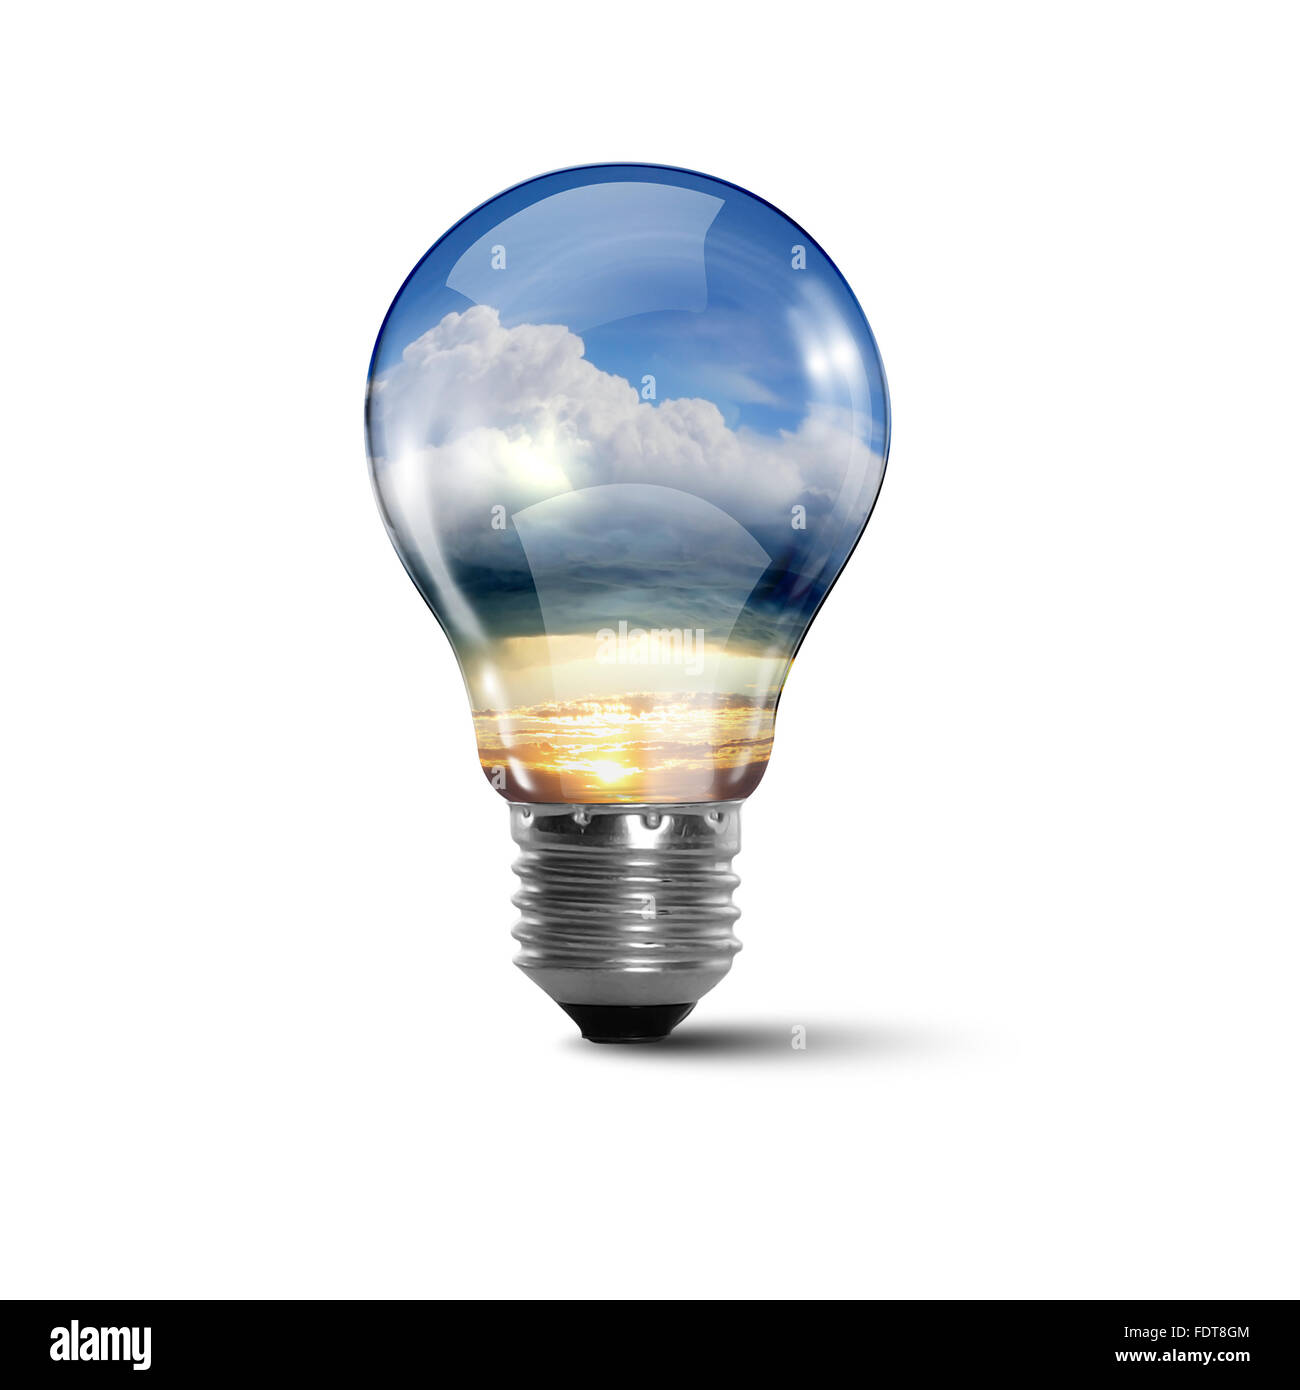 Illustration of an electric light bulb with clean and safe